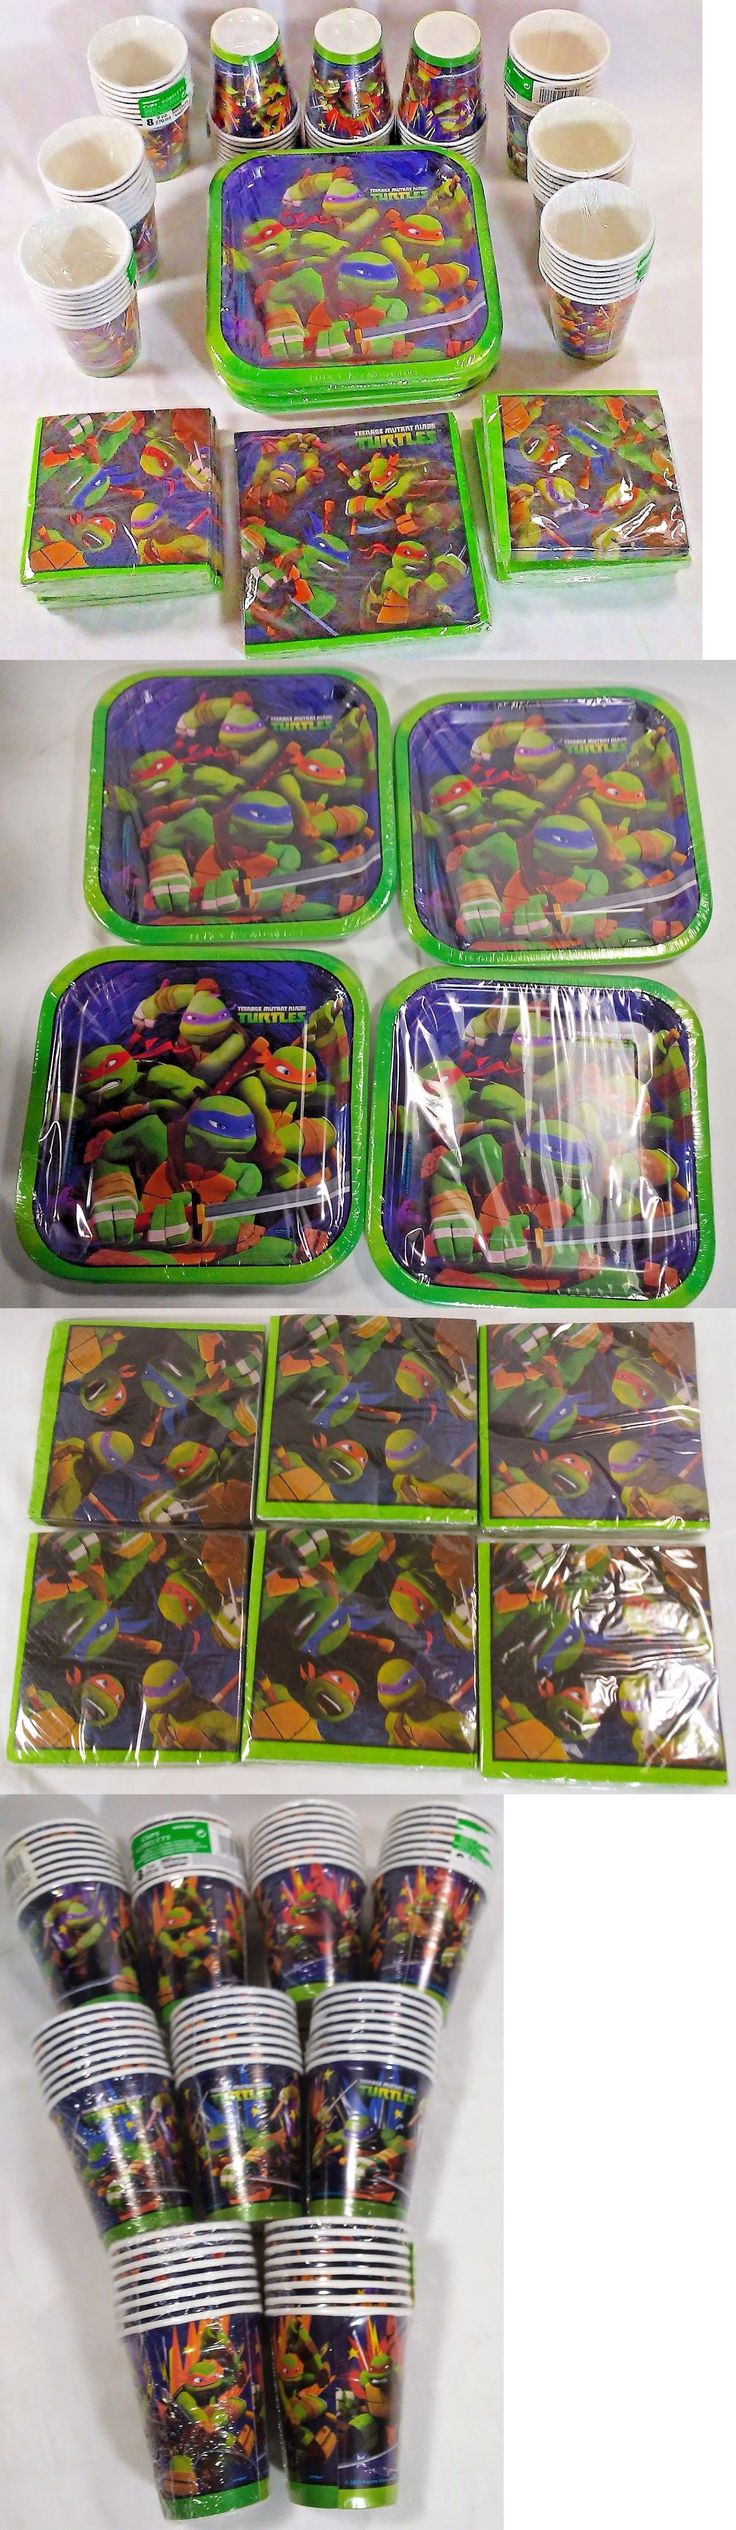 Party Tableware and Serveware 26388: Teenage Mutant Ninja Turtles Party Supply Tableware Bundle Cups Plates Napkins -> BUY IT NOW ONLY: $49.39 on eBay!